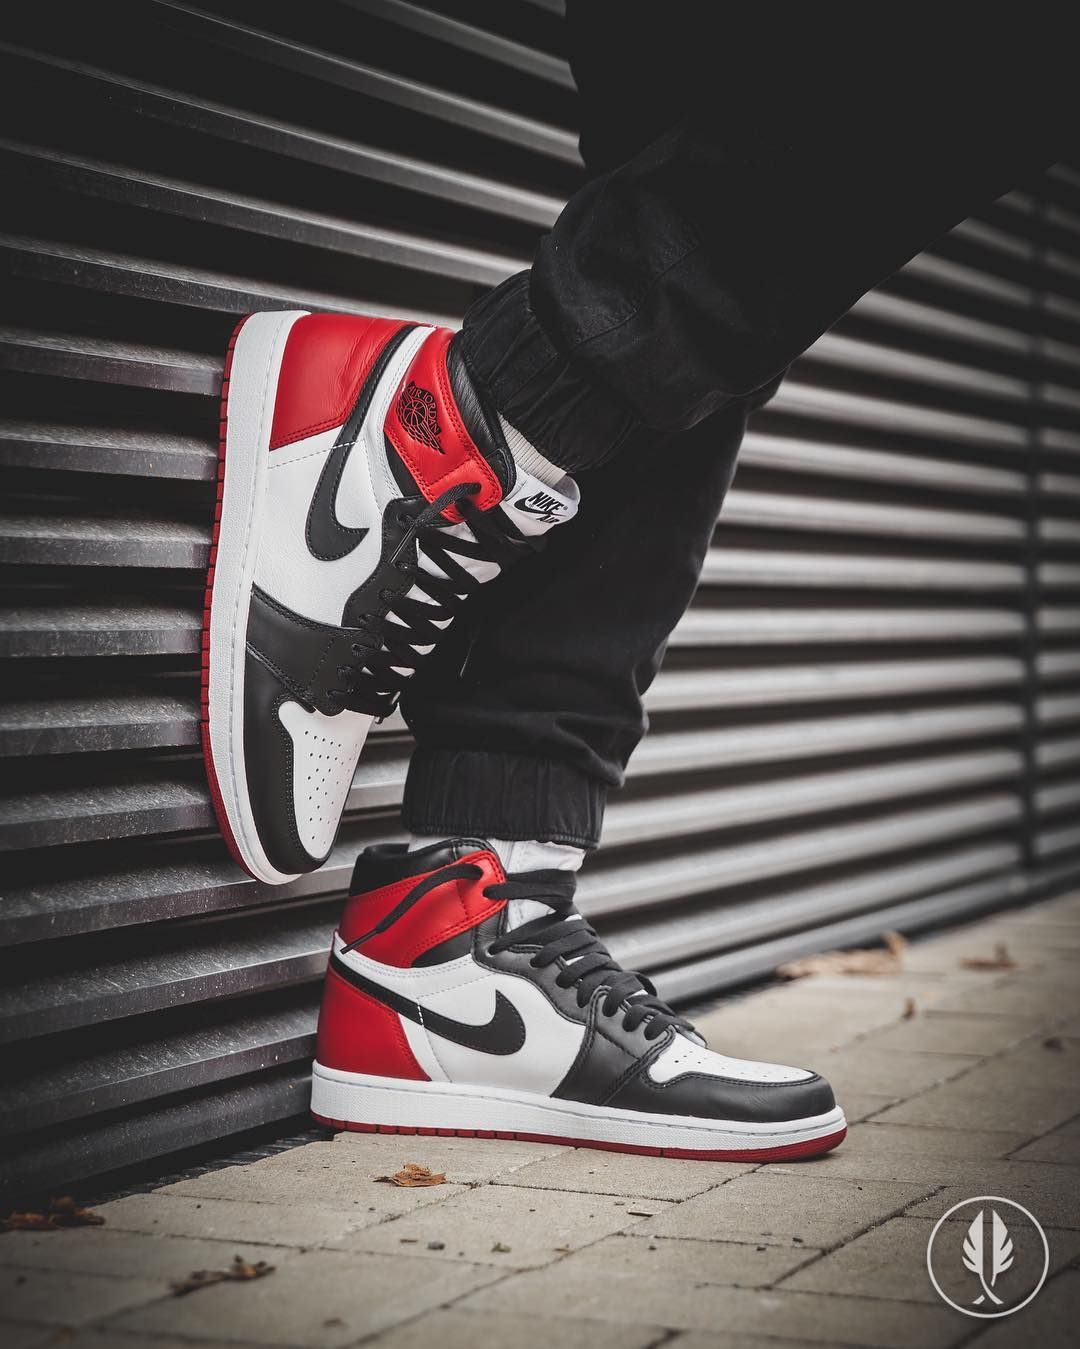 separation shoes 3525e 081a5 Air Jordan 1 Retro High Black Toe. Air Jordan 1 Retro High Black Toe Retro  Nike Shoes, Men s Sneakers, Sneakers Fashion